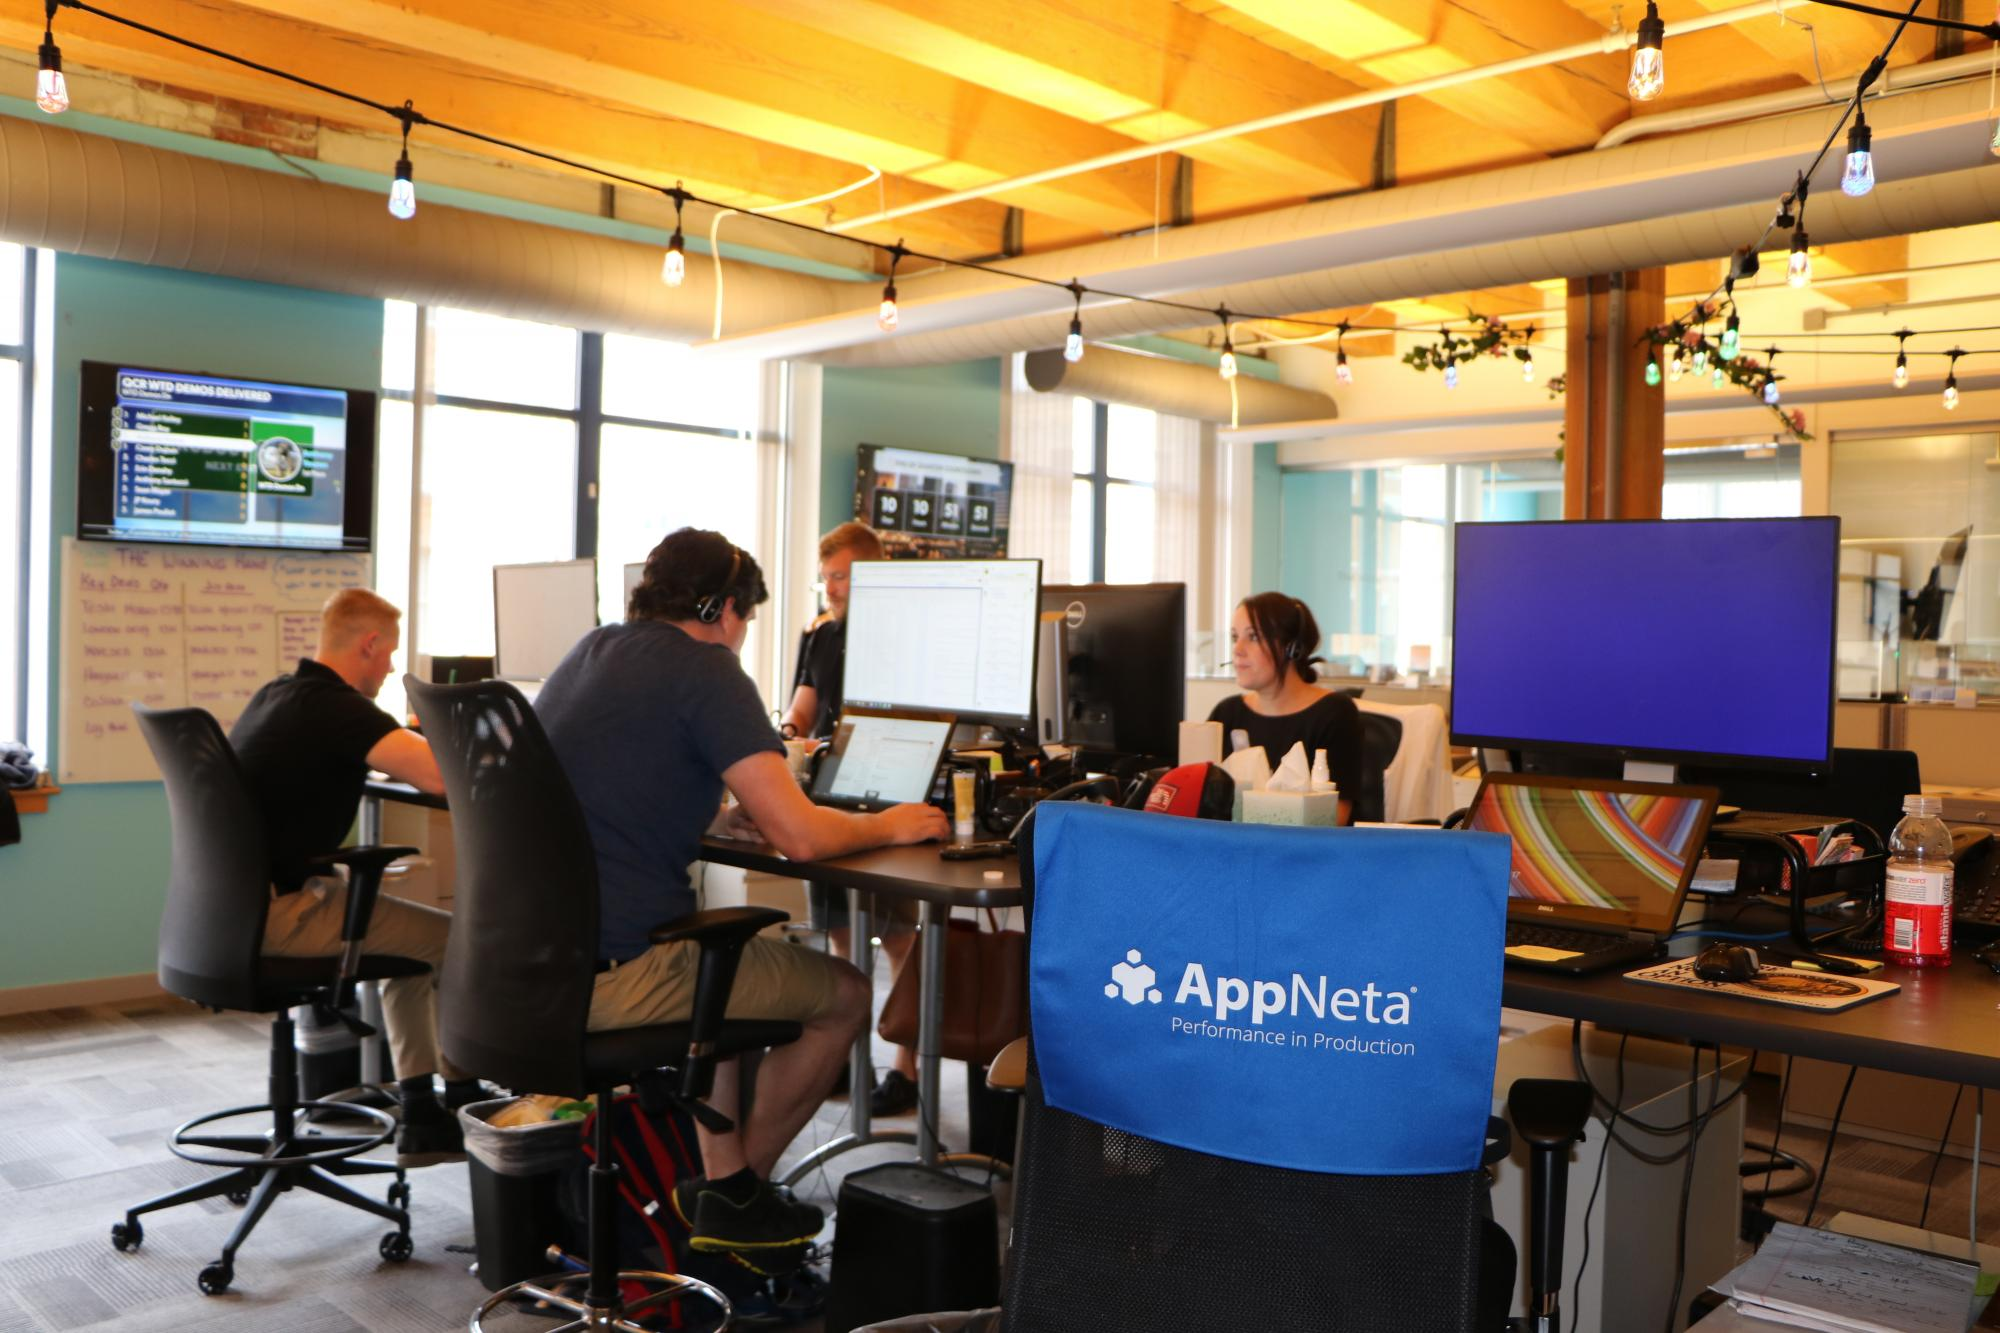 AppNeta team at work in Boston